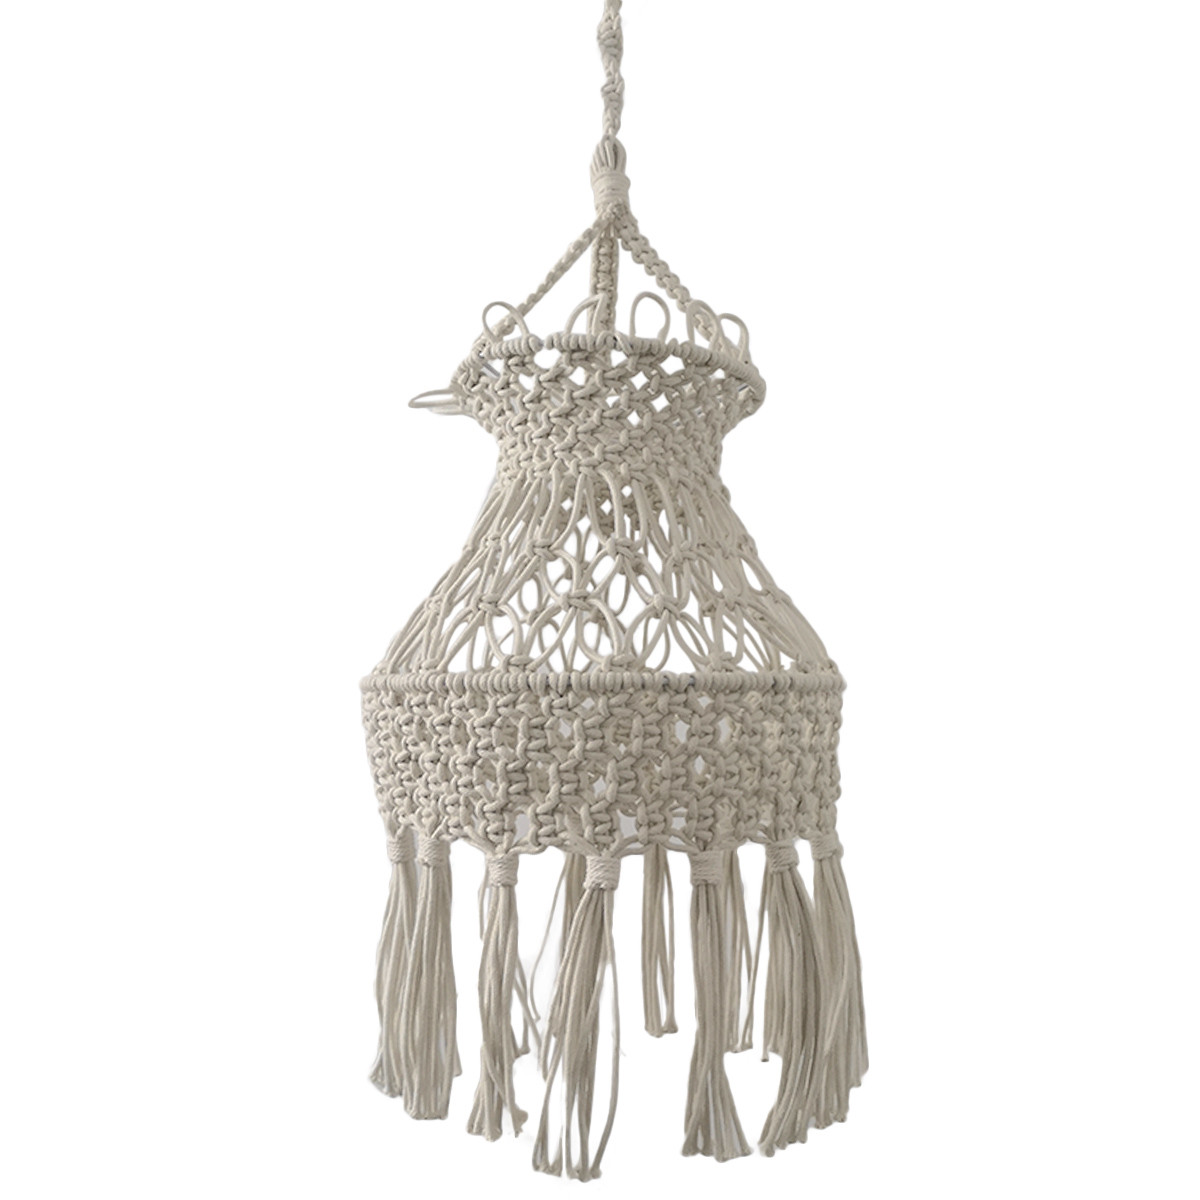 Vintage Handmade Macrame Lampshade Ceiling Pendant Light Shade Boho Art Decor Ebay